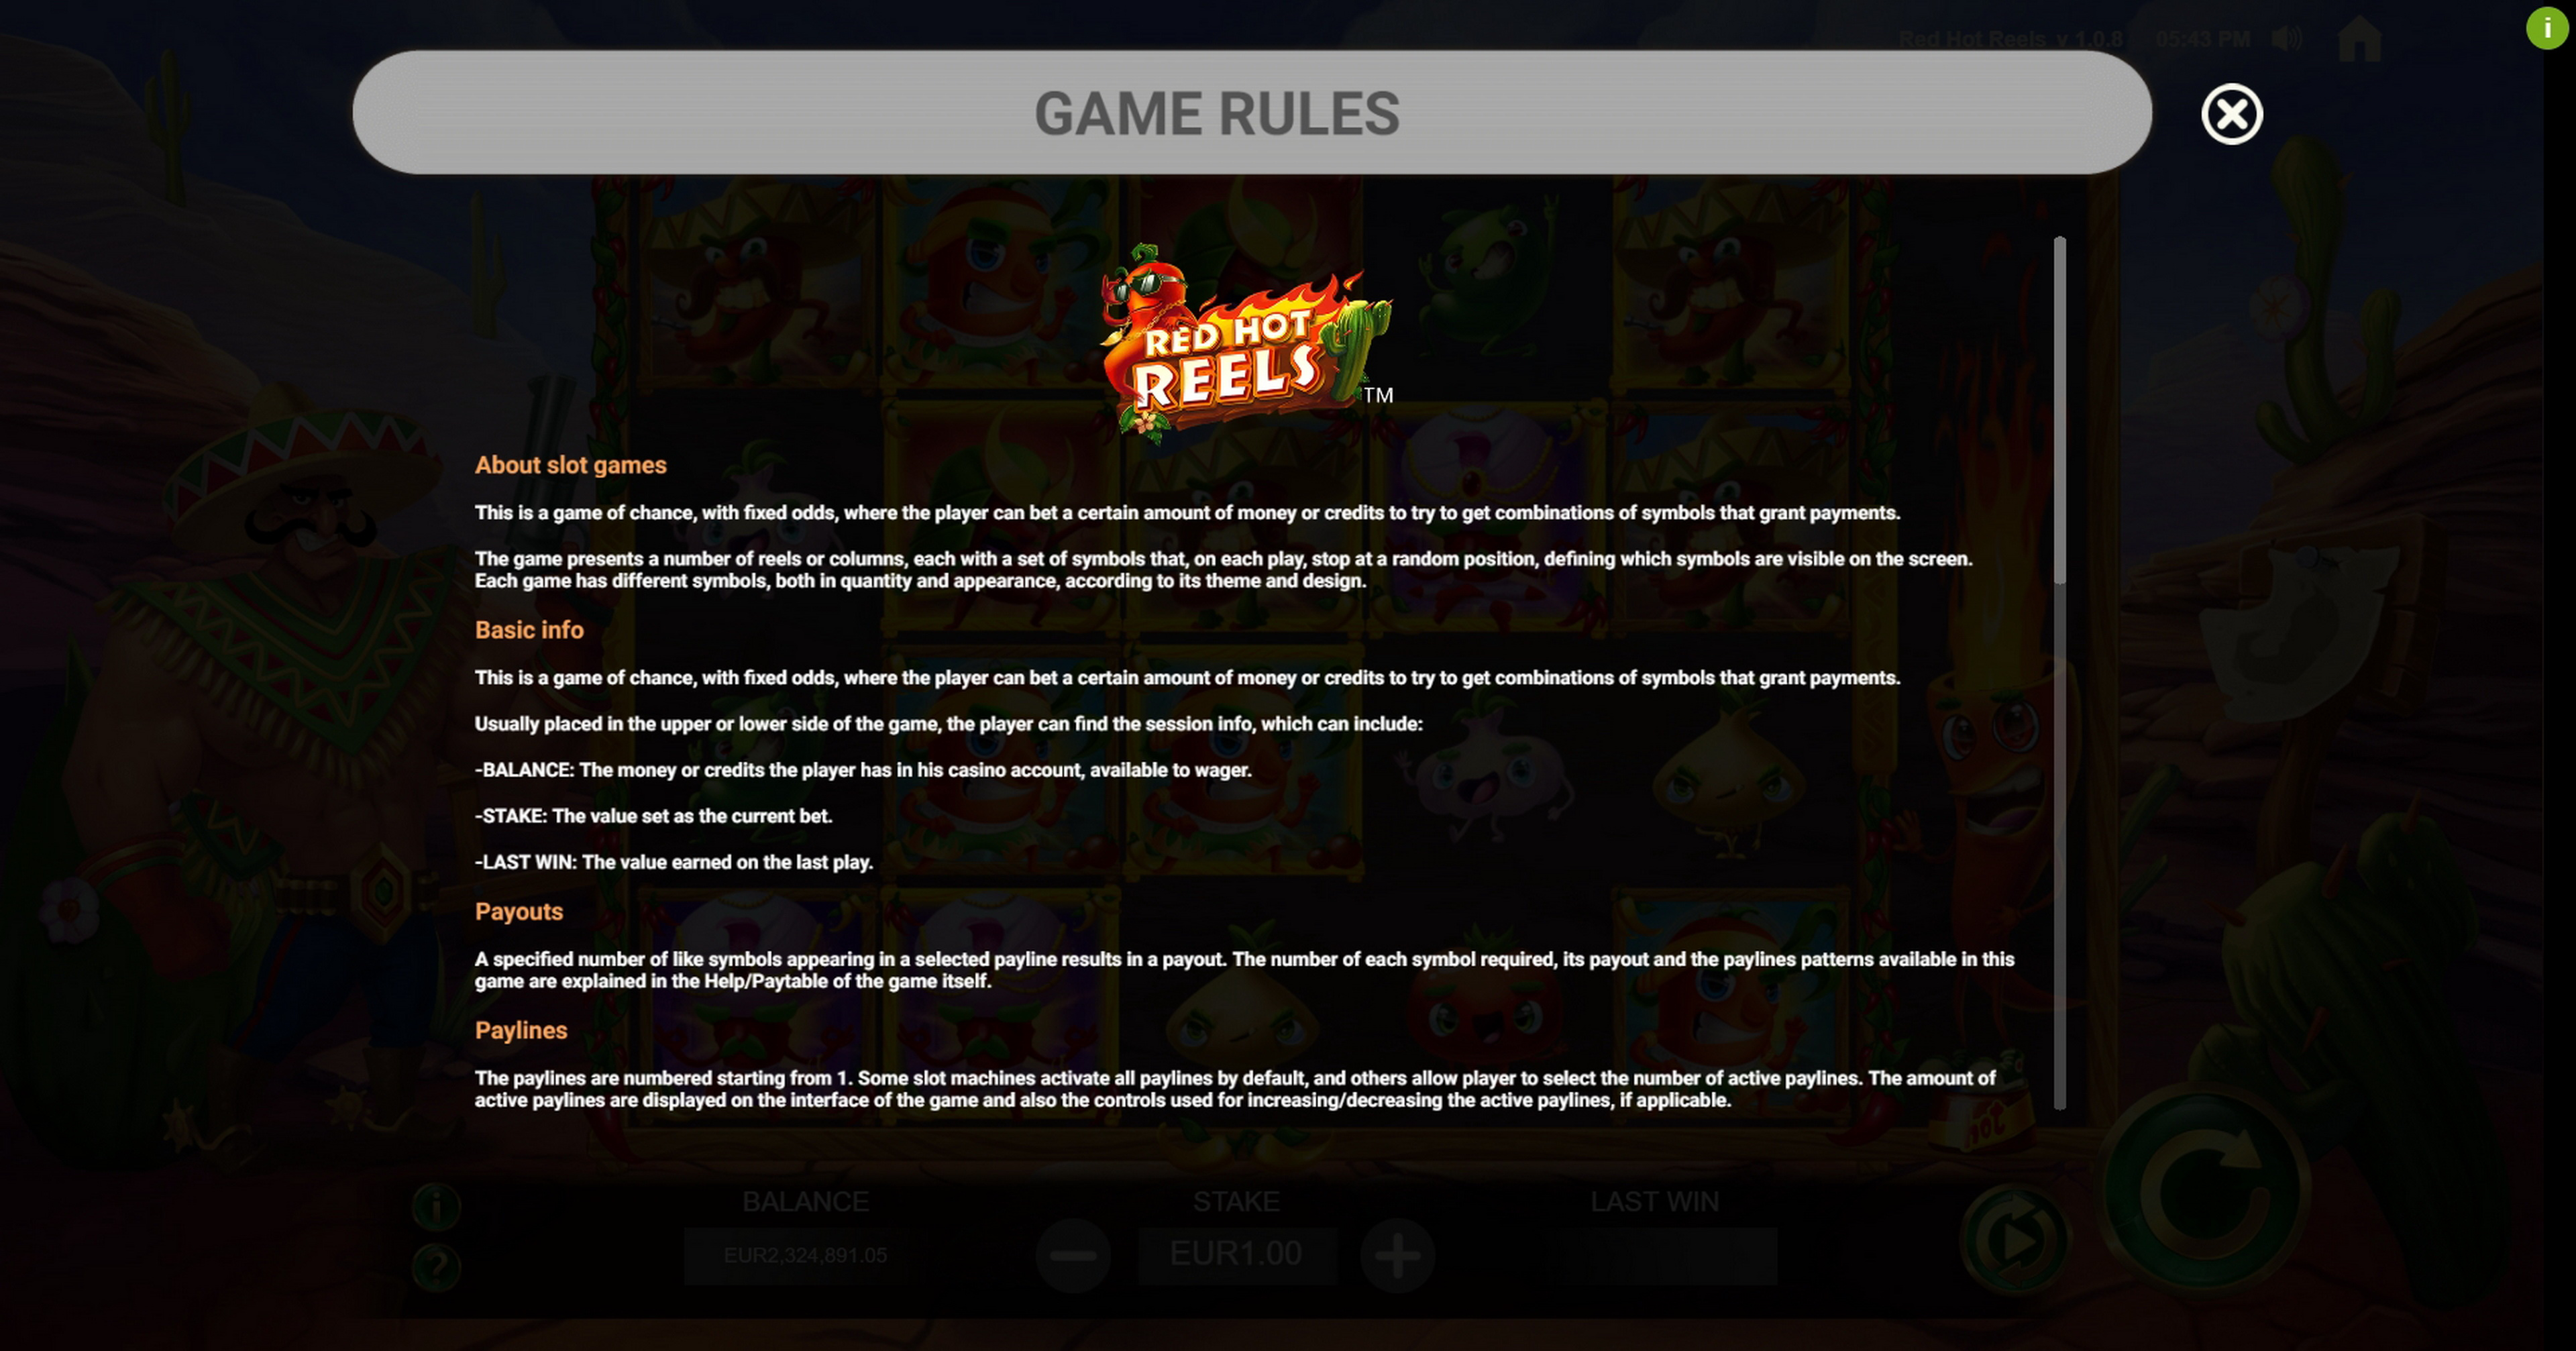 Reels in Red Hot Reels Slot Game by Jade Rabbit Gaming